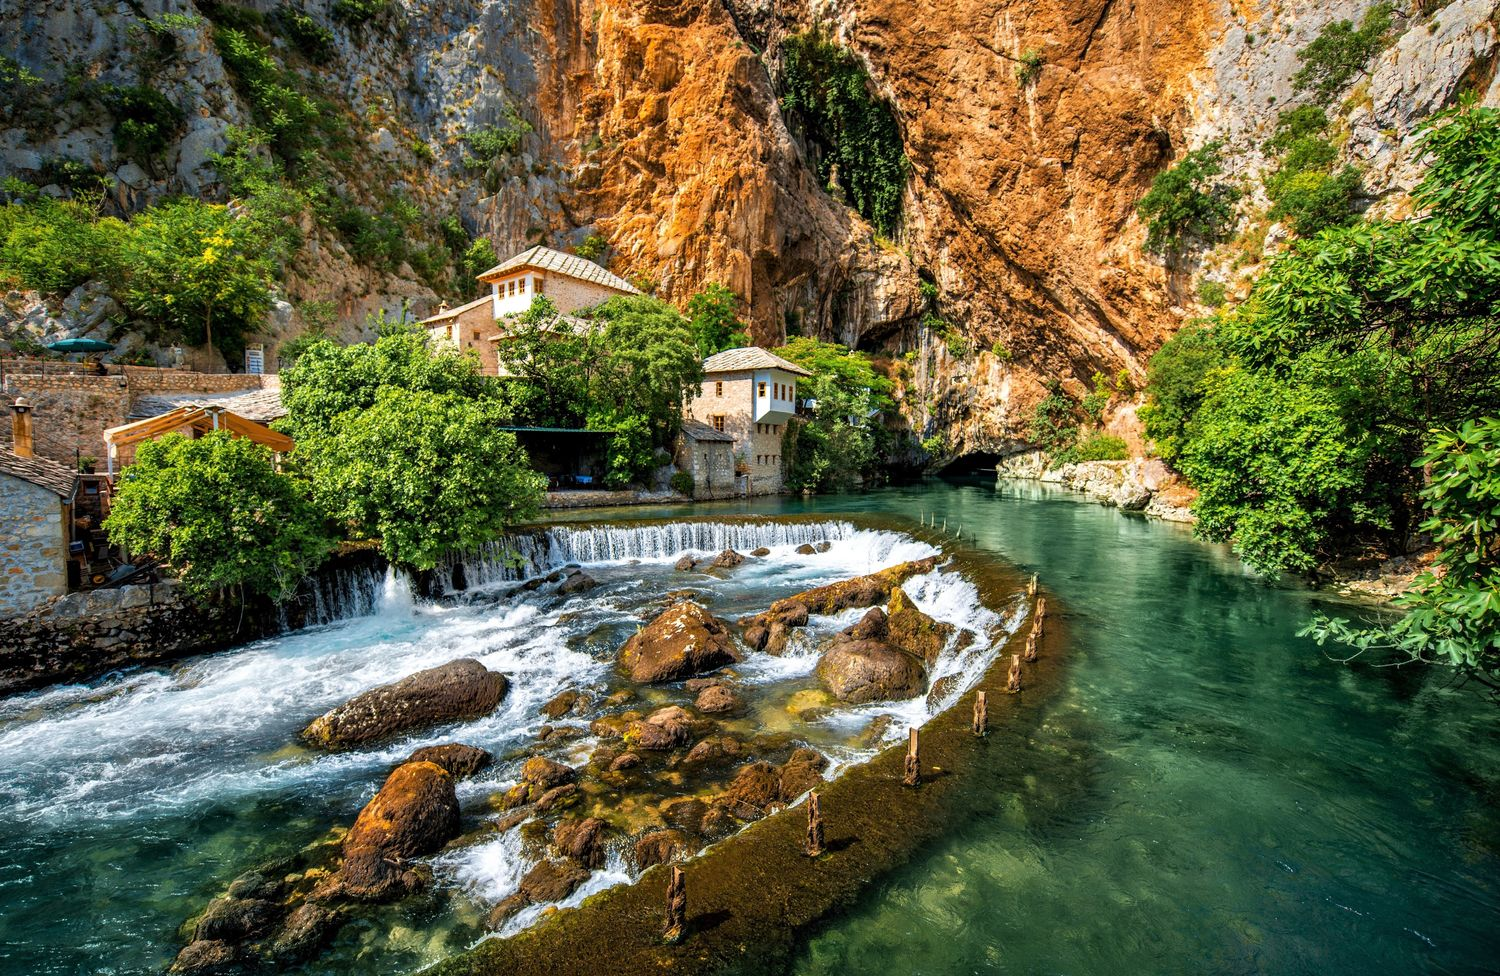 Vrelo Bune: A Perfect Mixture of Nature, History, and Architecture in Bosnia and Herzegovina